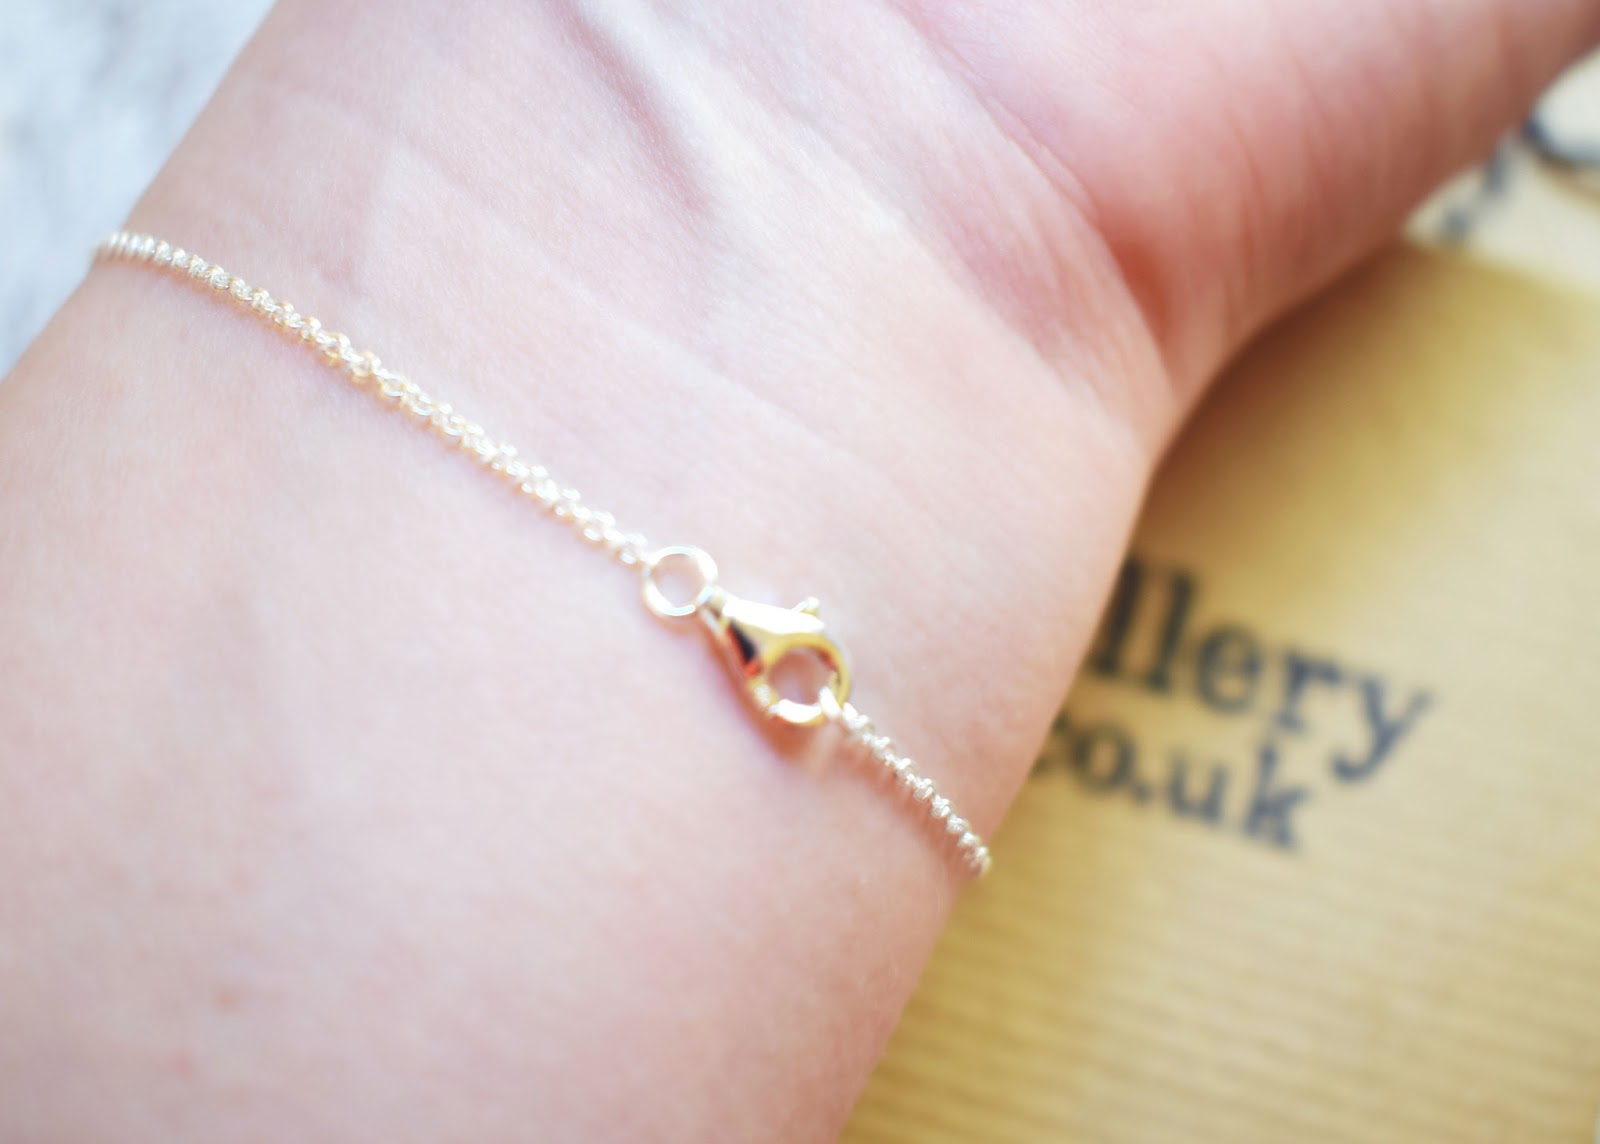 lebellelavie - A little gift from JewelleryBox